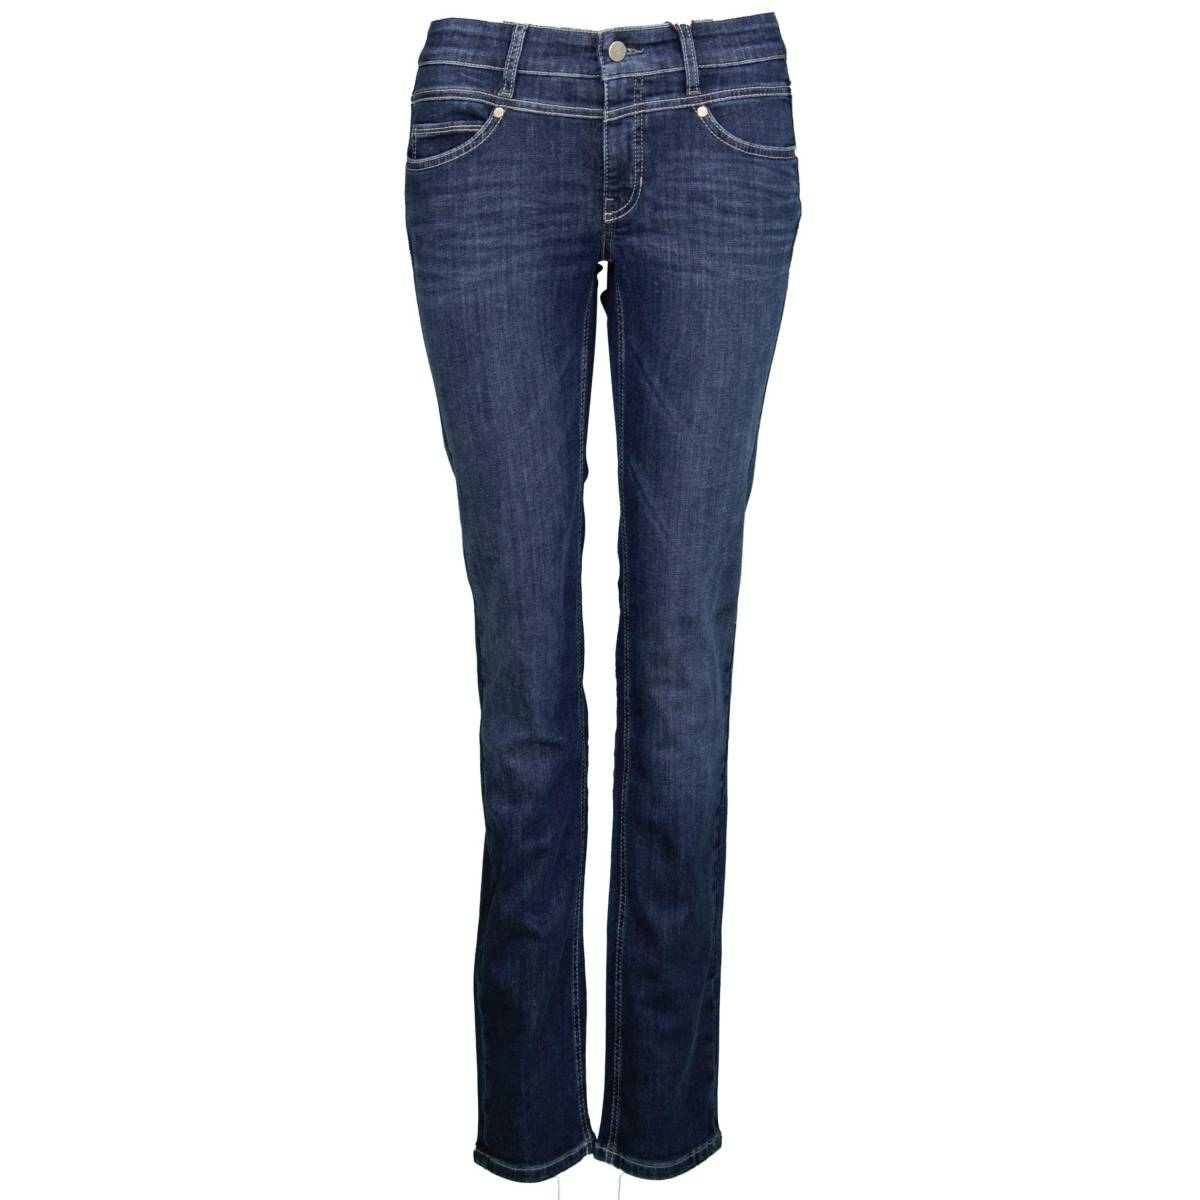 Cambio Posh Jeans cambio trousers posh 9130-0052-04 jeans at penninkhoffashion.com BPZIOTU